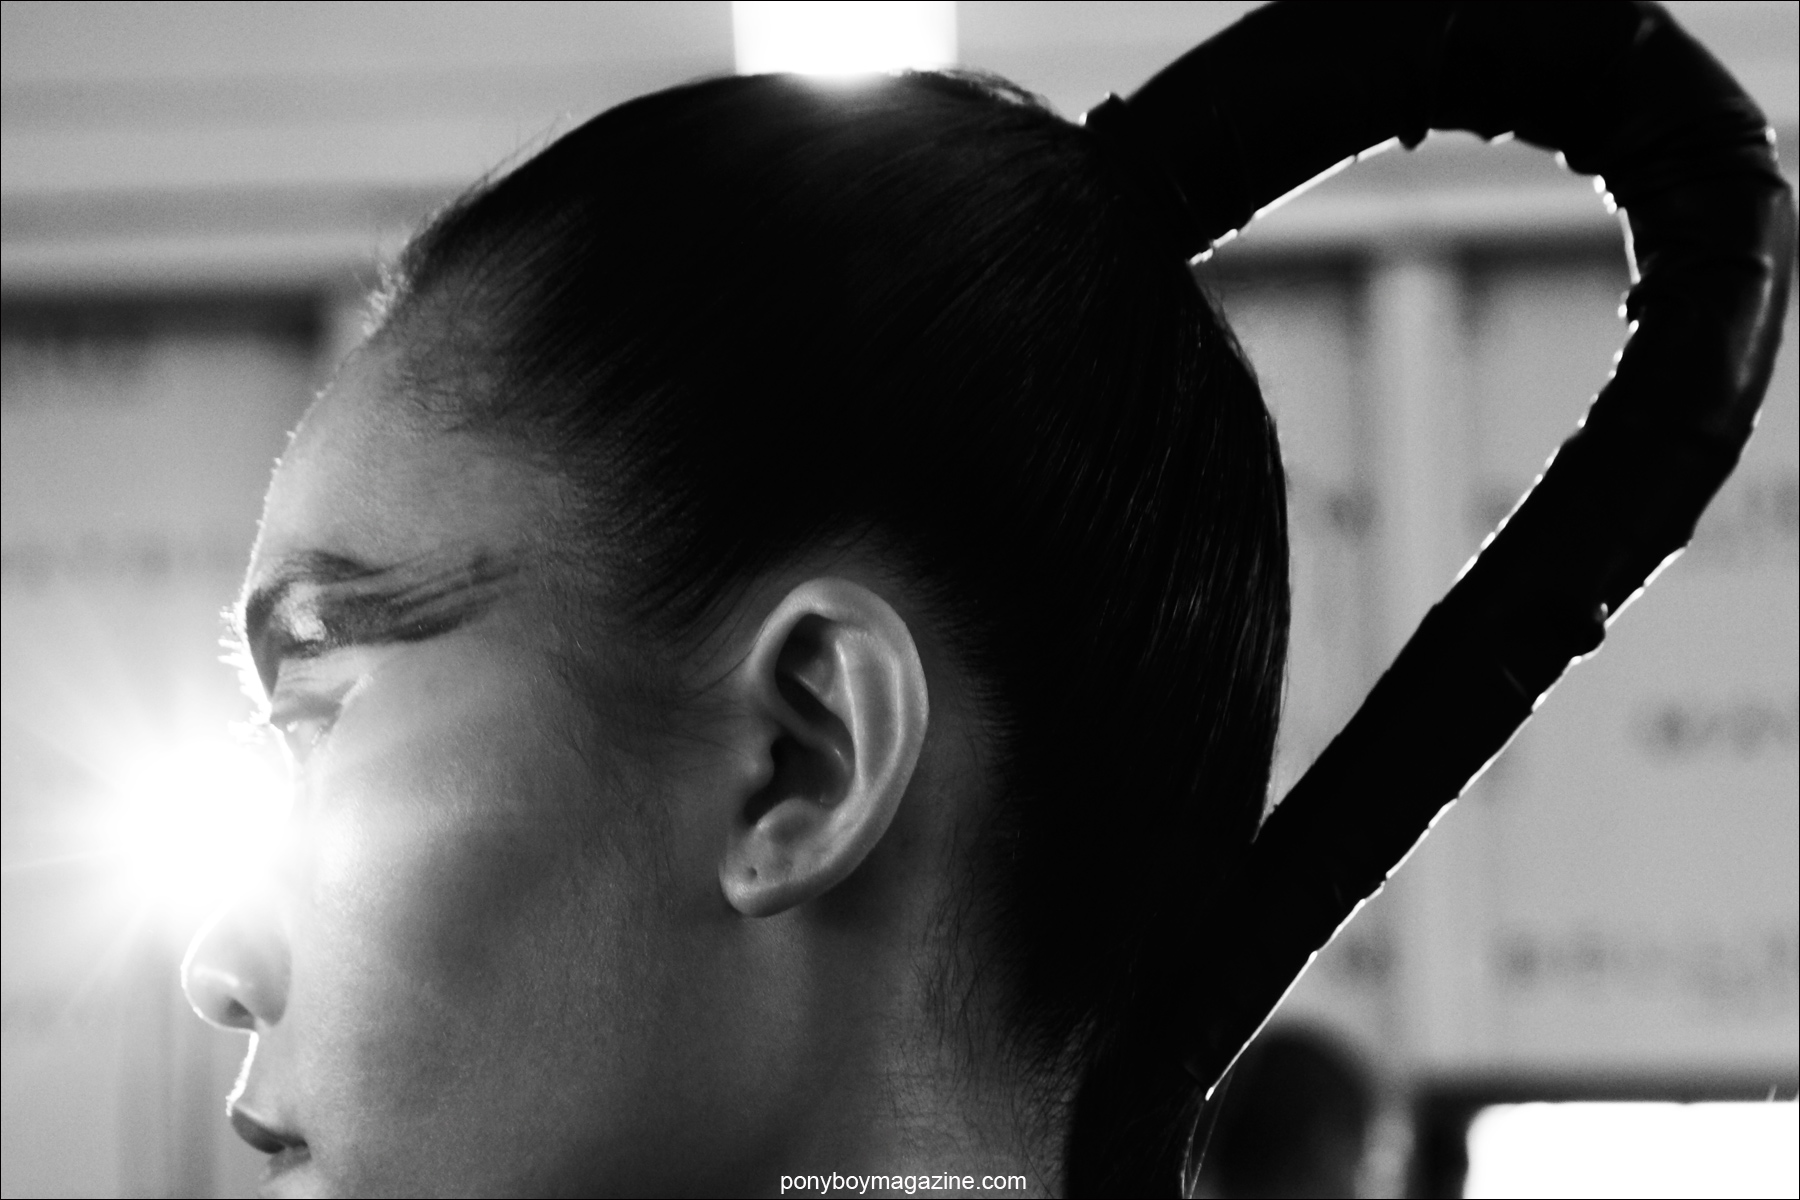 A modern futuristic ponytail photographed backstage at Chromat F/W15 collcetion at Milk Studios. Photograph by Alexander Thompson for Ponyboy magazine.